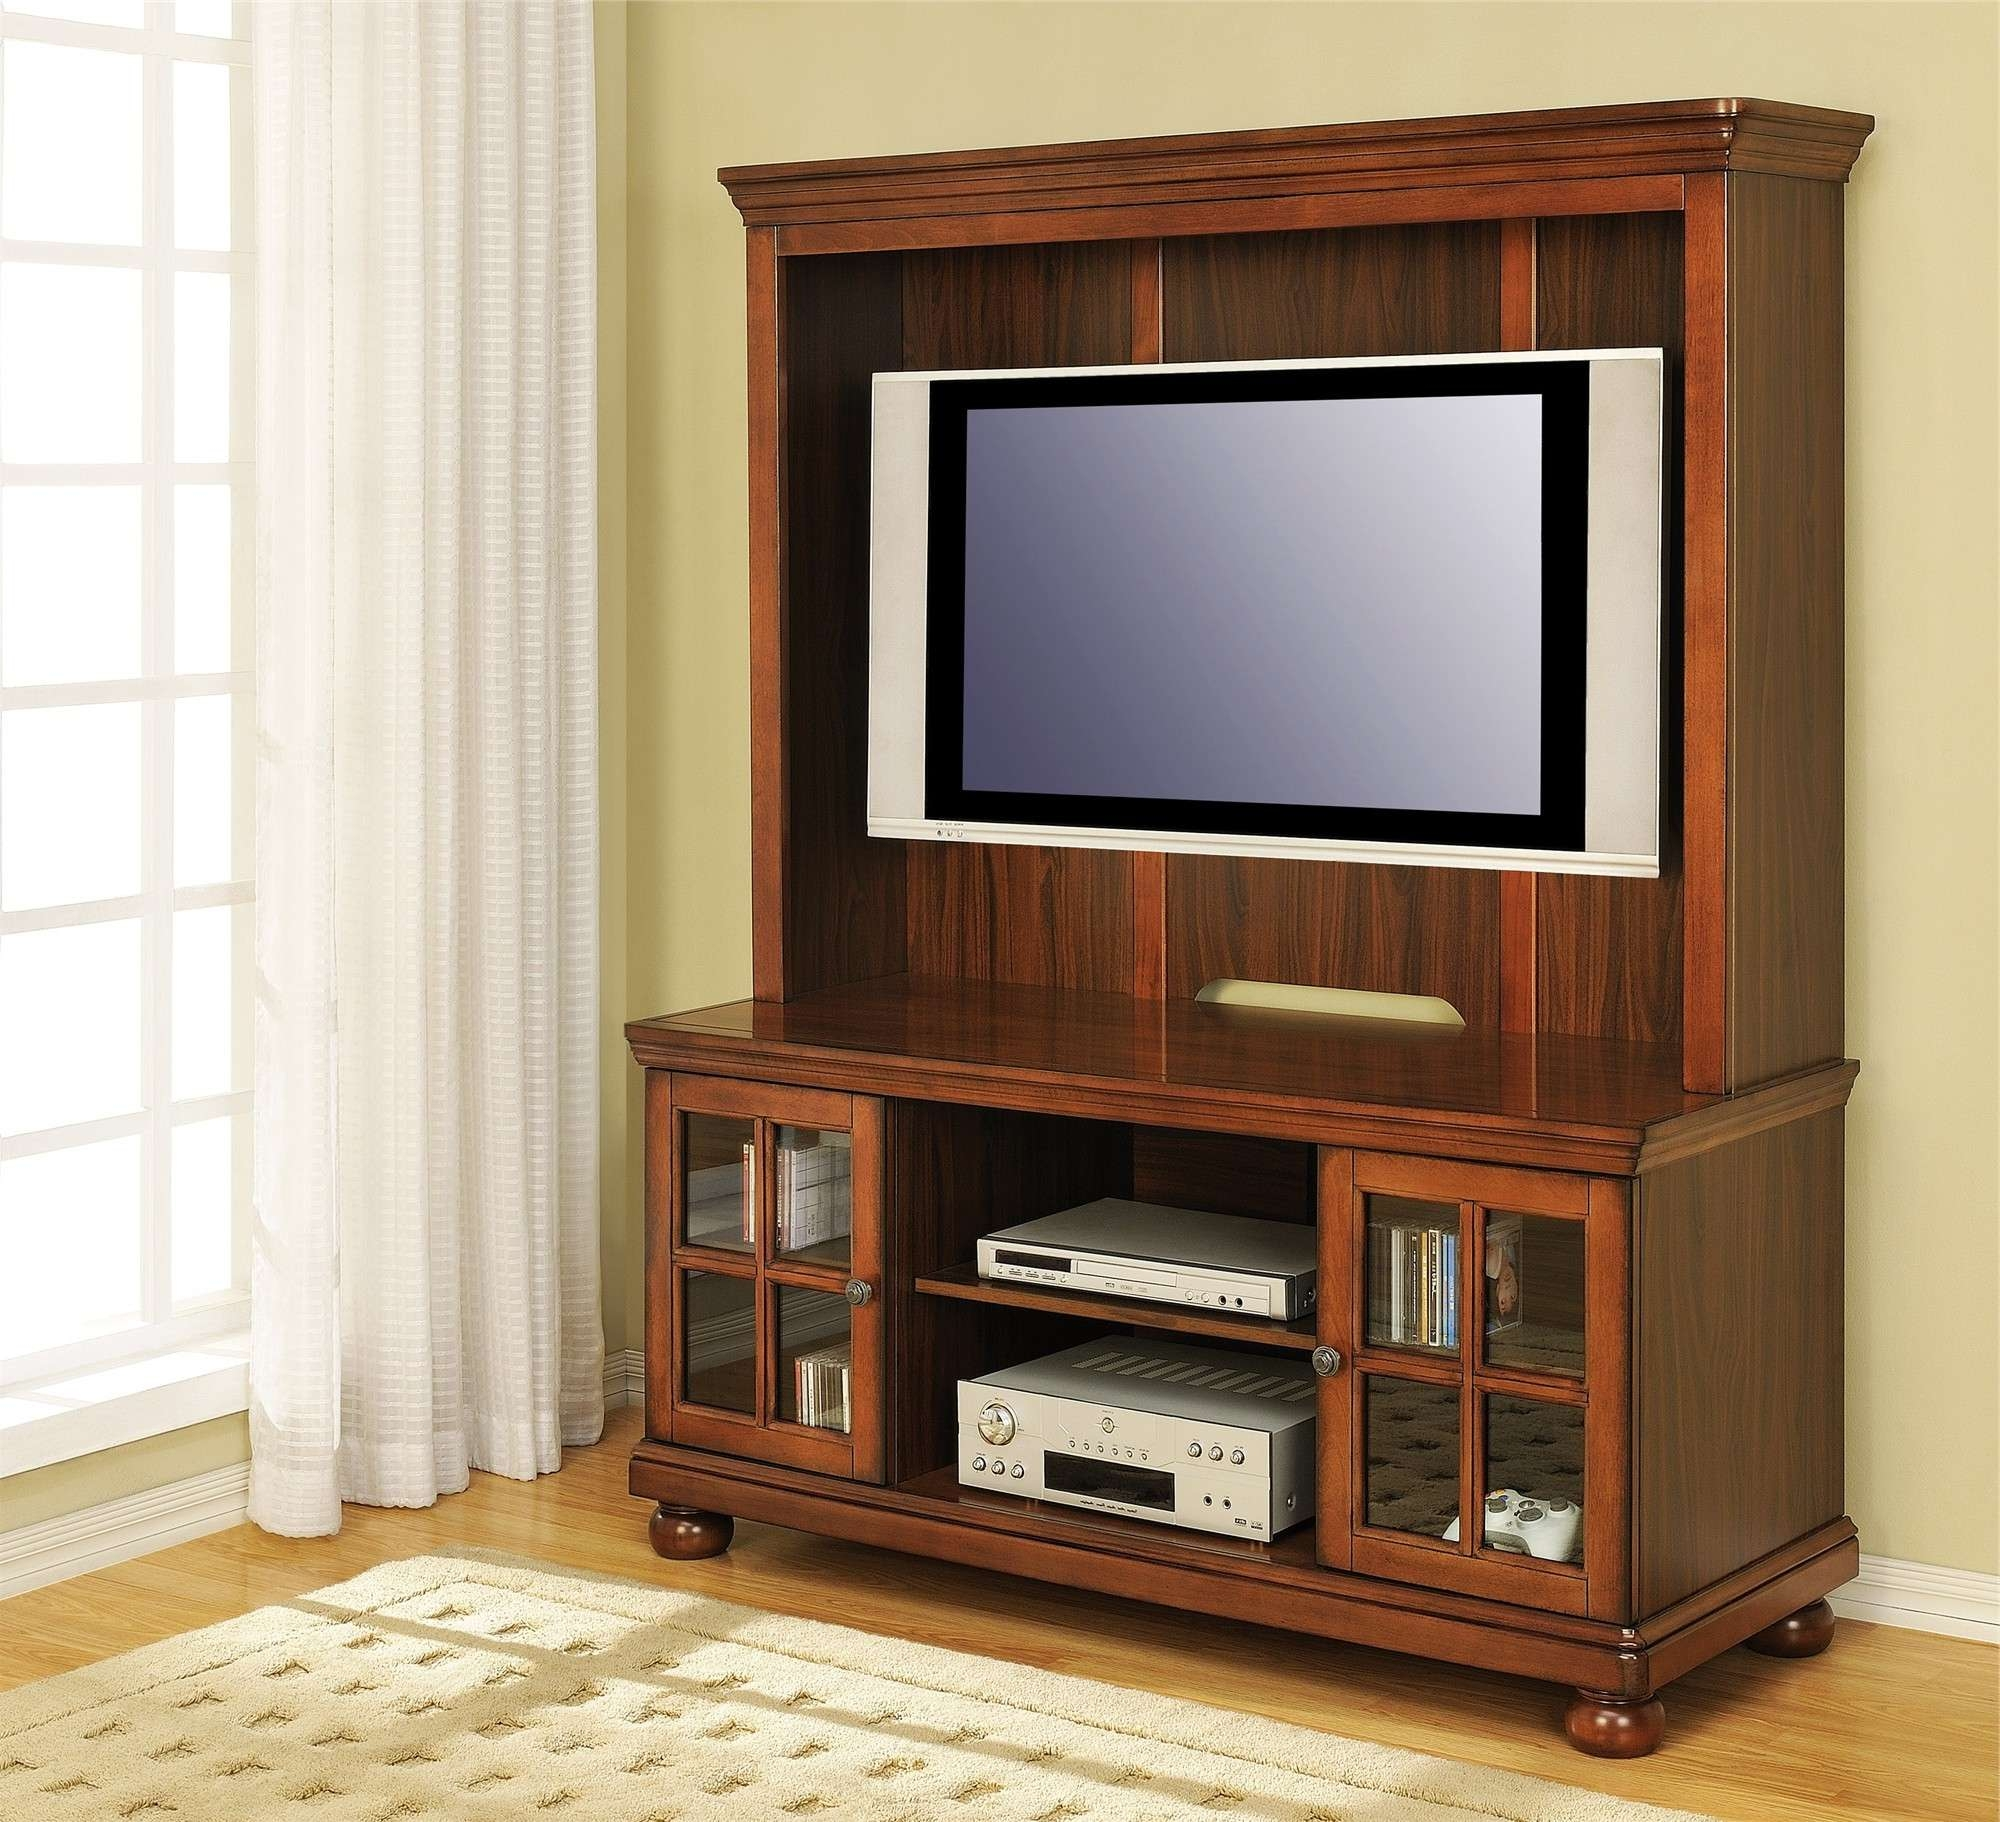 Corner Oak Tv Cabinets For Flat Screens With Doors • Corner Cabinets Throughout Corner Tv Cabinets For Flat Screens With Doors (View 12 of 20)